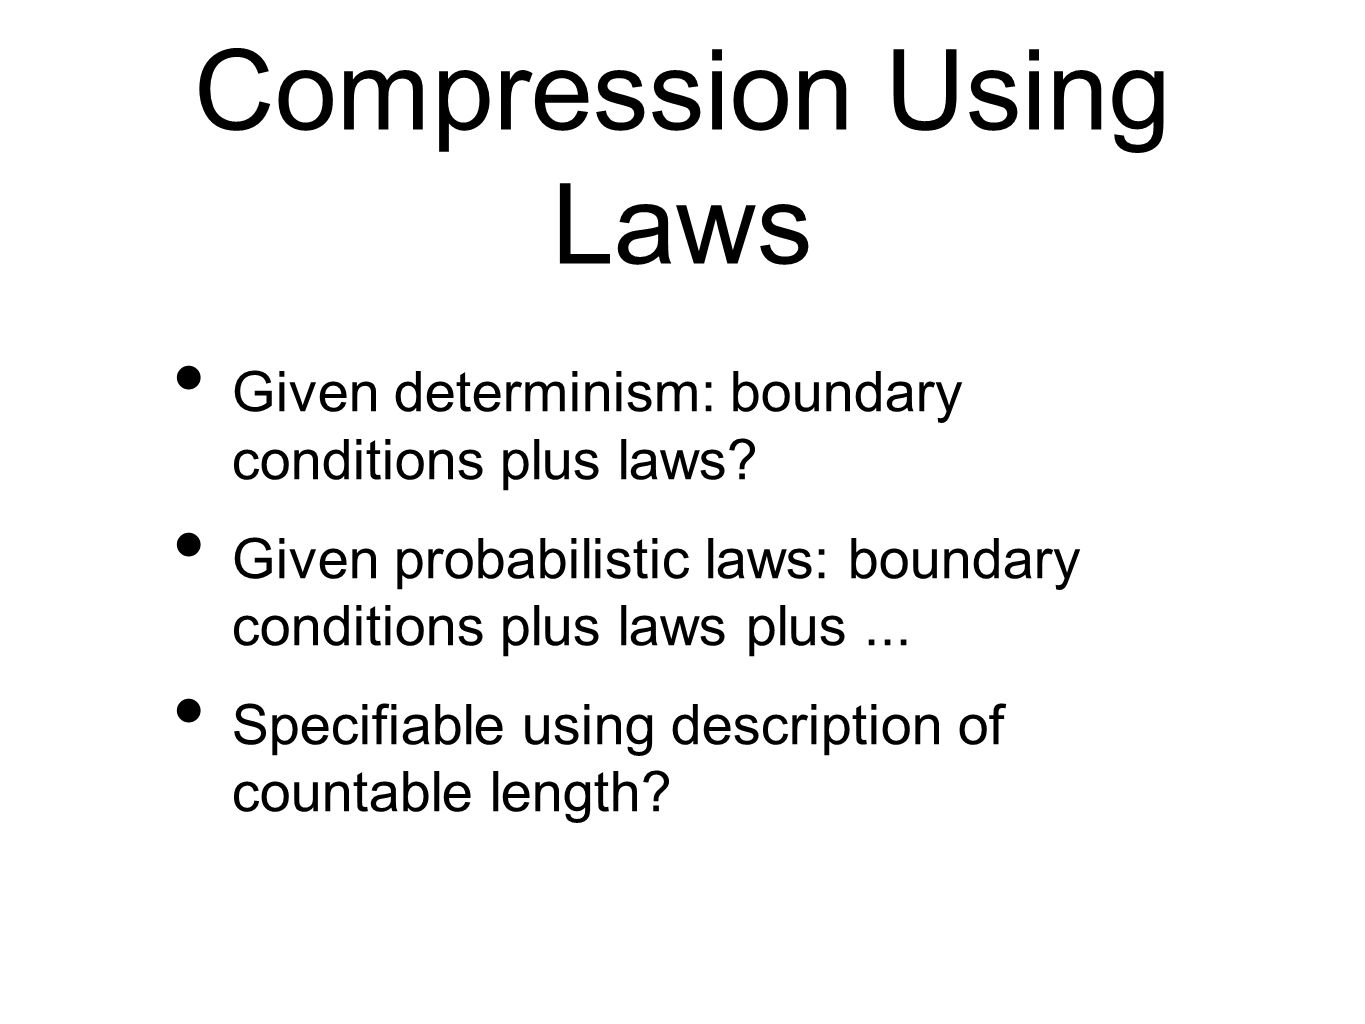 Compression Using Laws Given determinism: boundary conditions plus laws? Given probabilistic laws: boundary conditions plus laws plus... Specifiable u